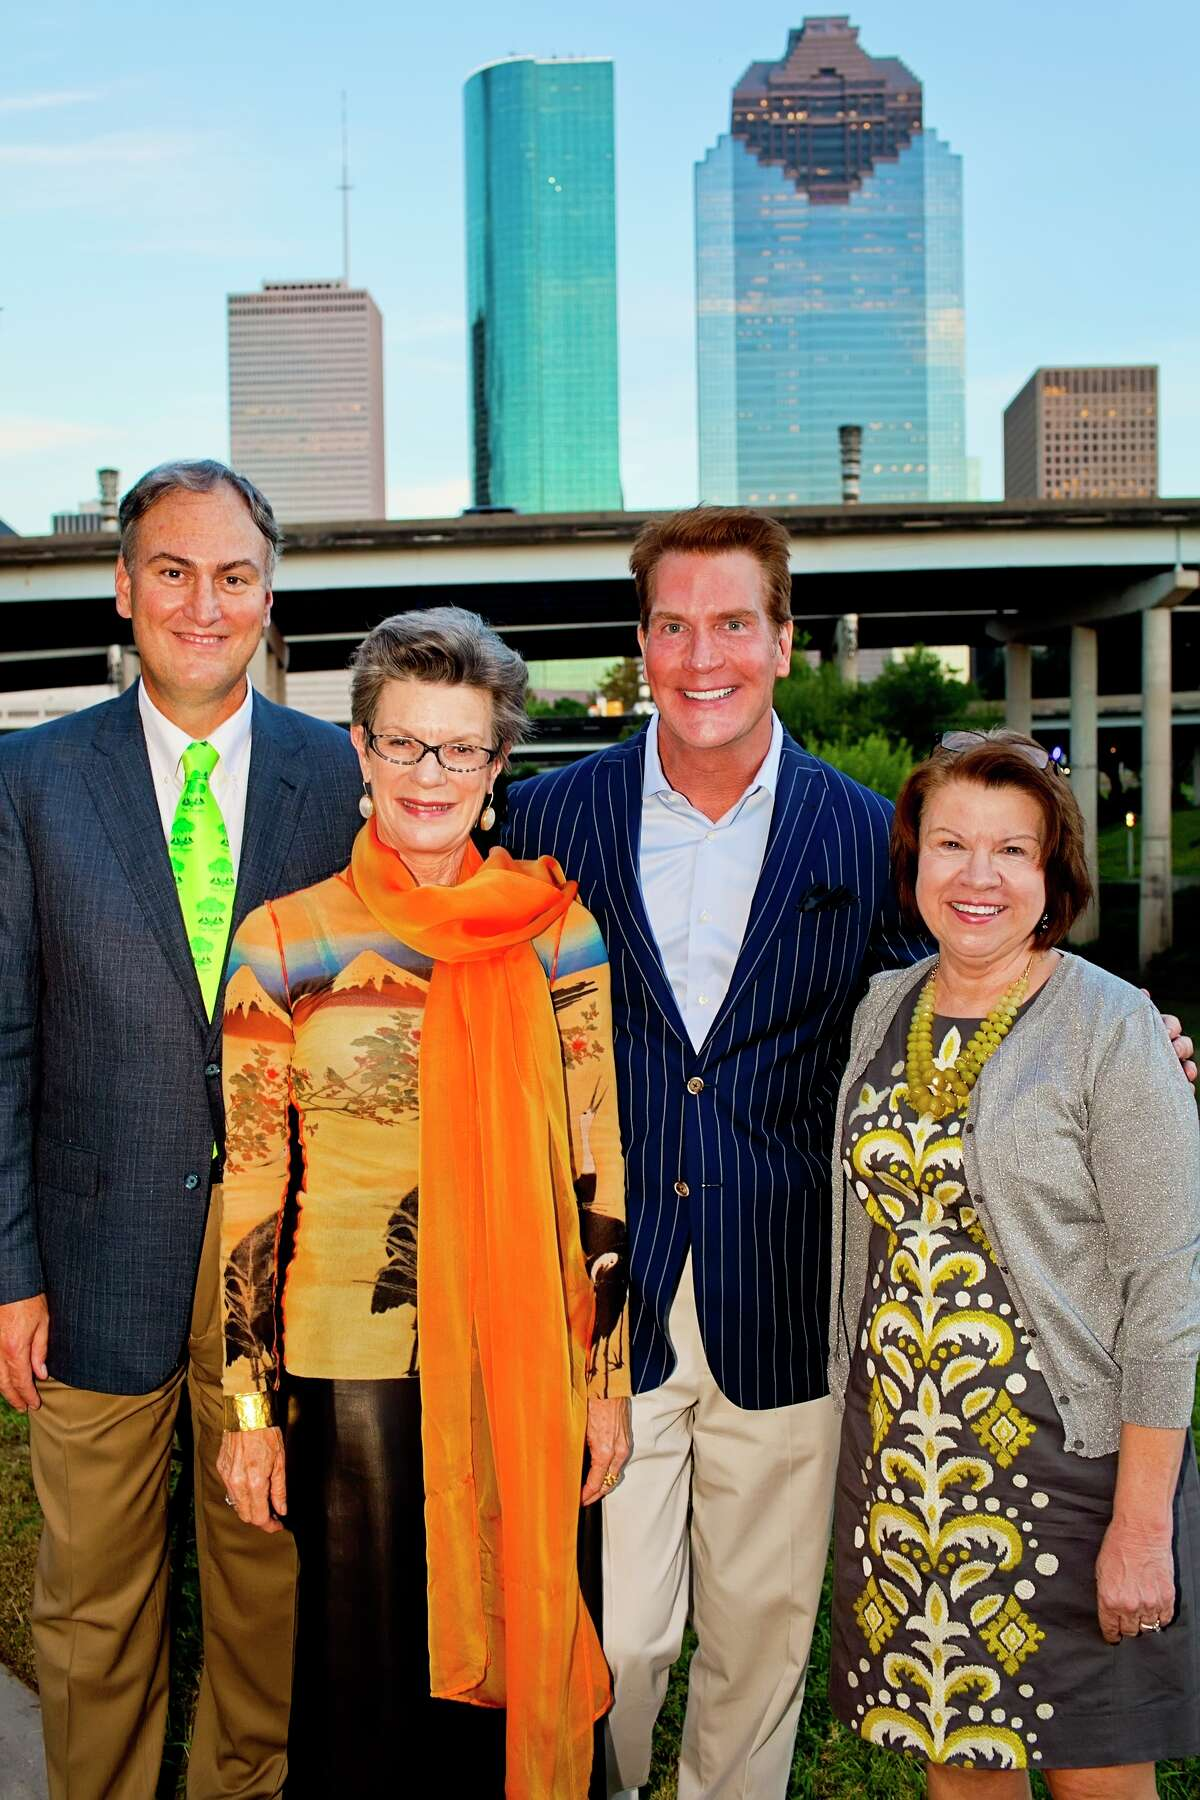 Honoree Mark Cover, from left, chairs Marley Lott and George Lancaster, and president Anne Olson at the Buffalo Bayou Partnership's 2012 gala.